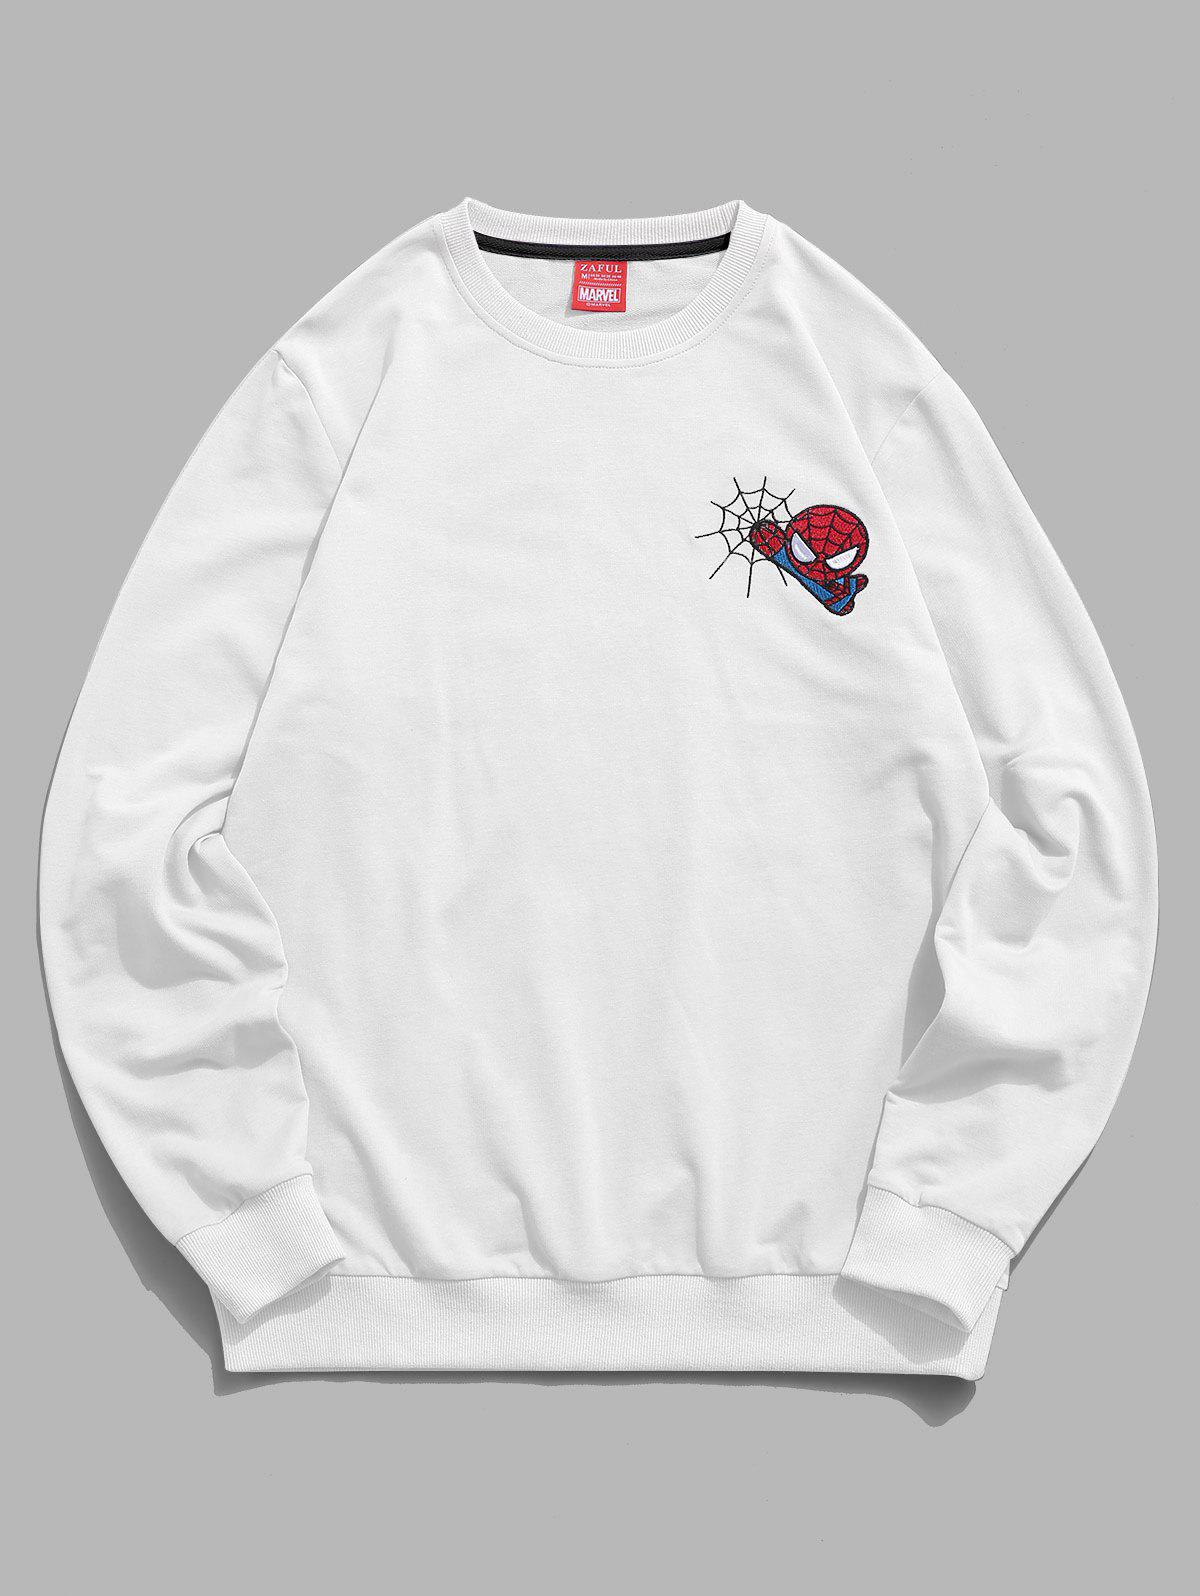 Marvel Spider-Man Embroidery Web Casual Sweatshirt - WHITE L